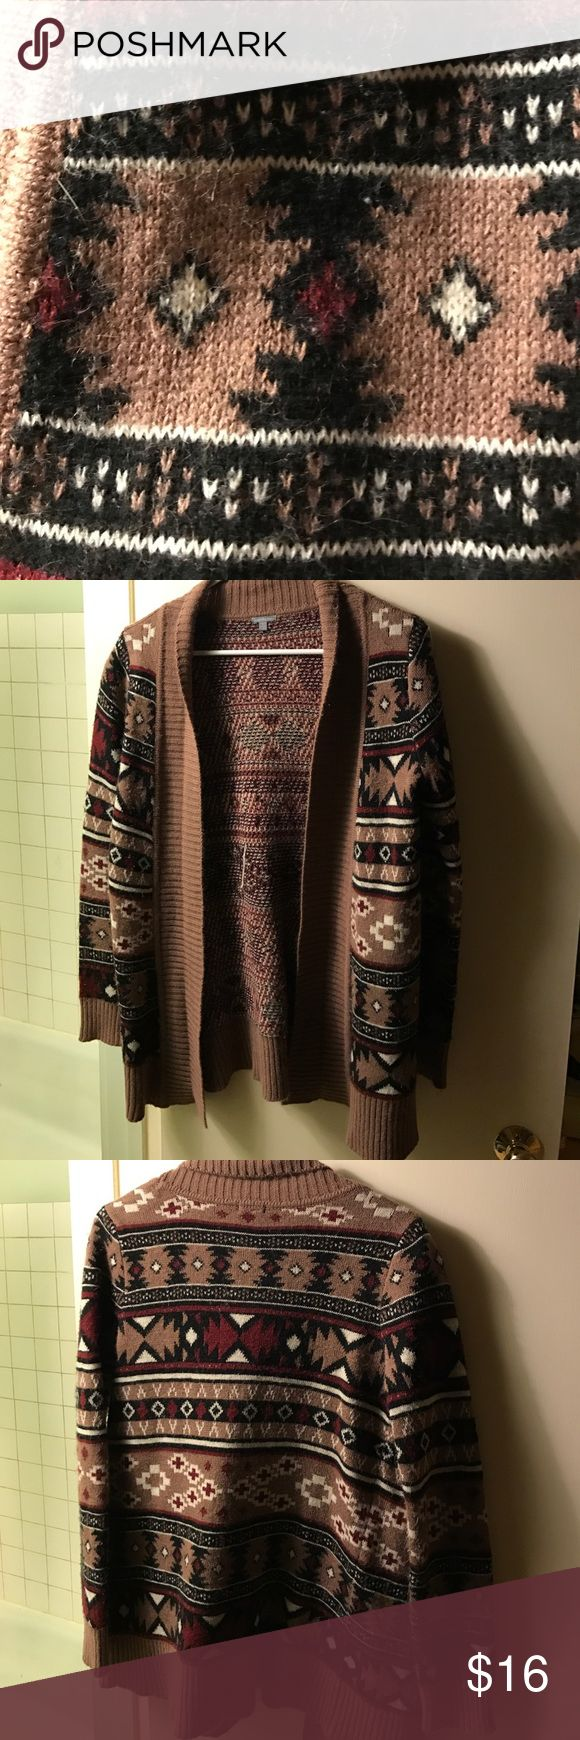 Maroon brown and Black tribal cardigan sweater Maroon Brown and Black tribal cardigan Charlotte Russe Sweaters Cardigans